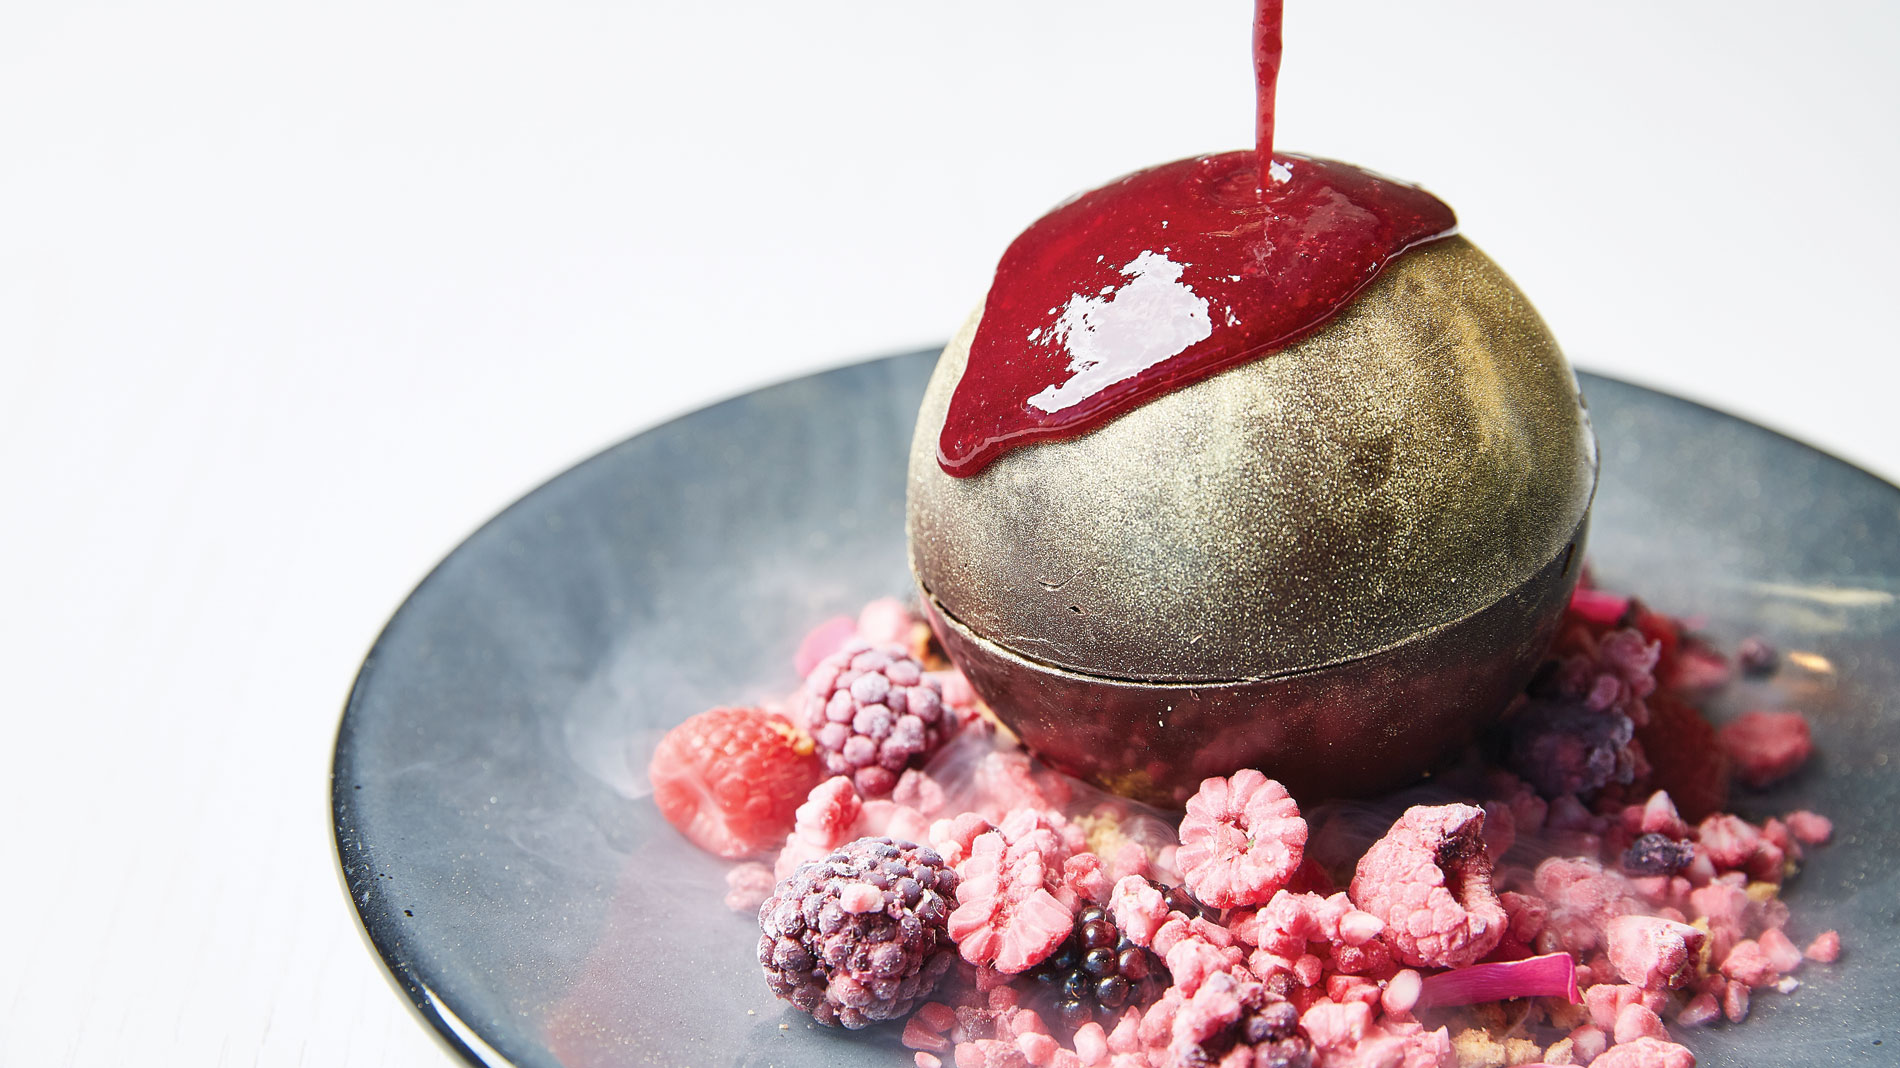 a dessert consisting of a chocolate orb atop freeze-dried berries being drizzled with berry sauce